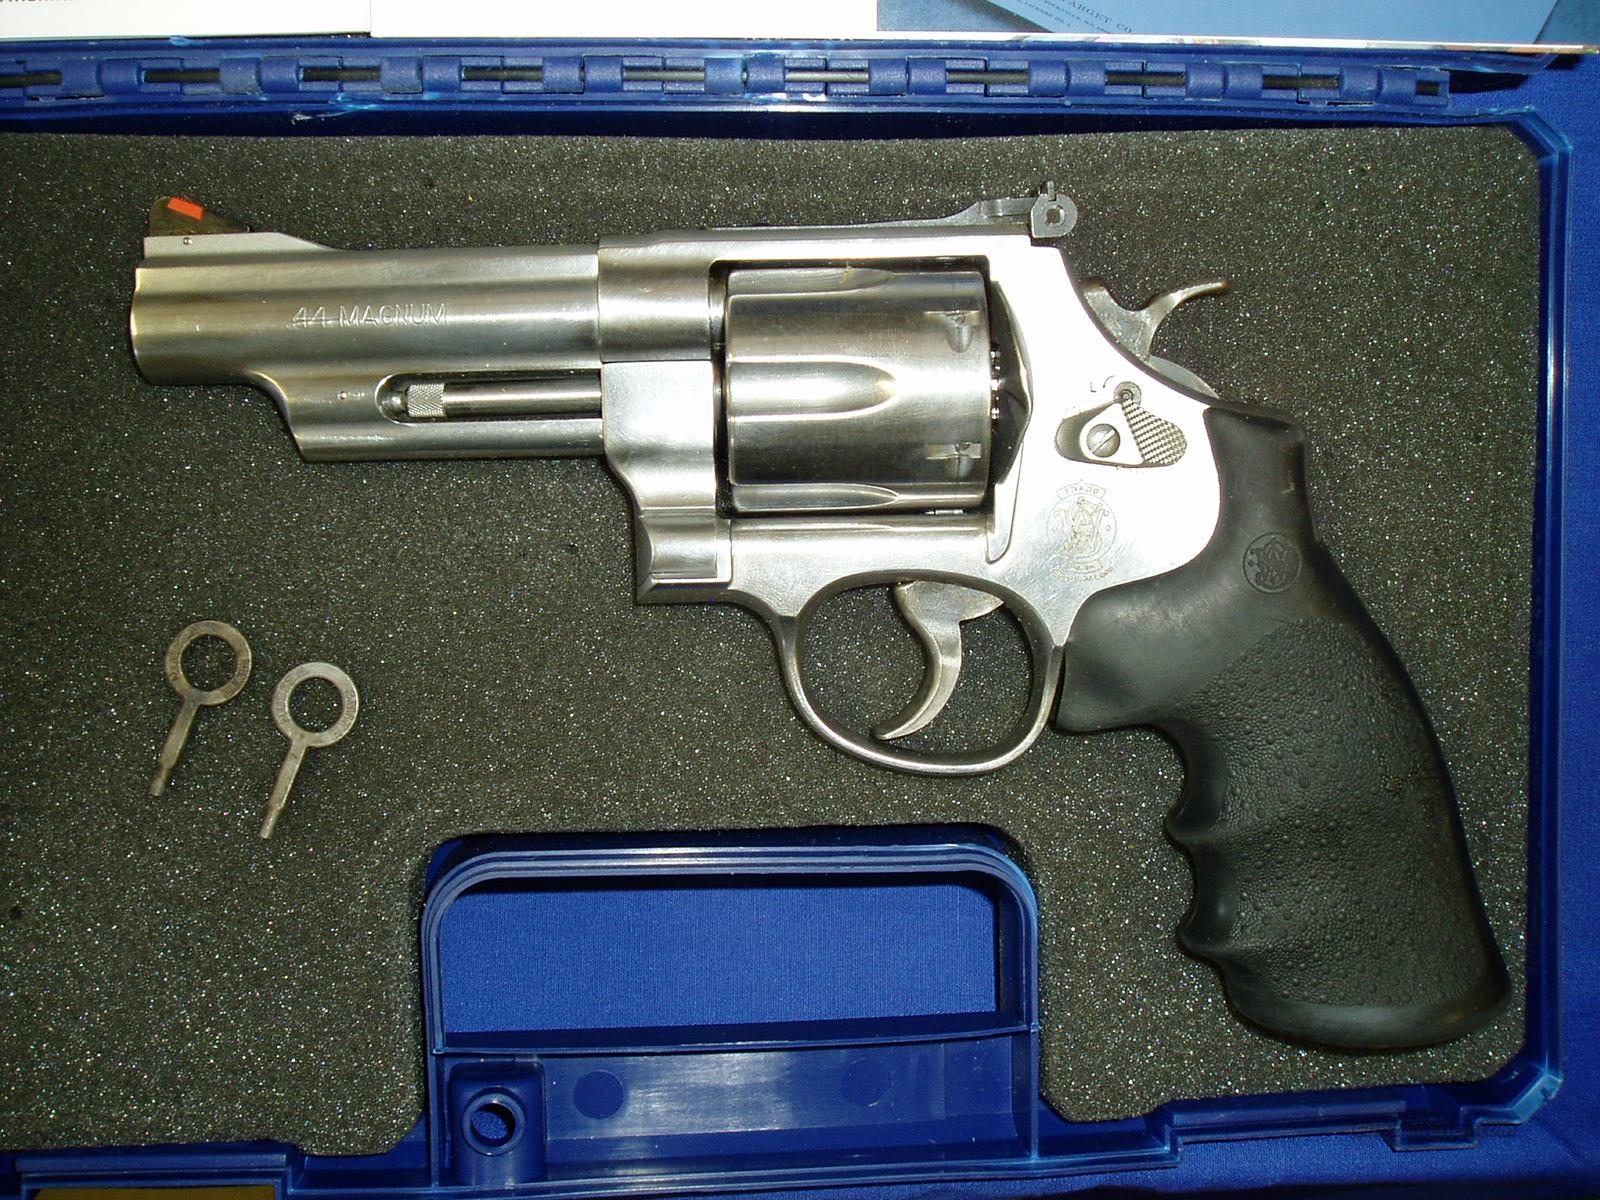 Smith & Wesson 629-6 w/ Holster and Speed Loader  Guns > Pistols > Smith & Wesson Revolvers > Model 629